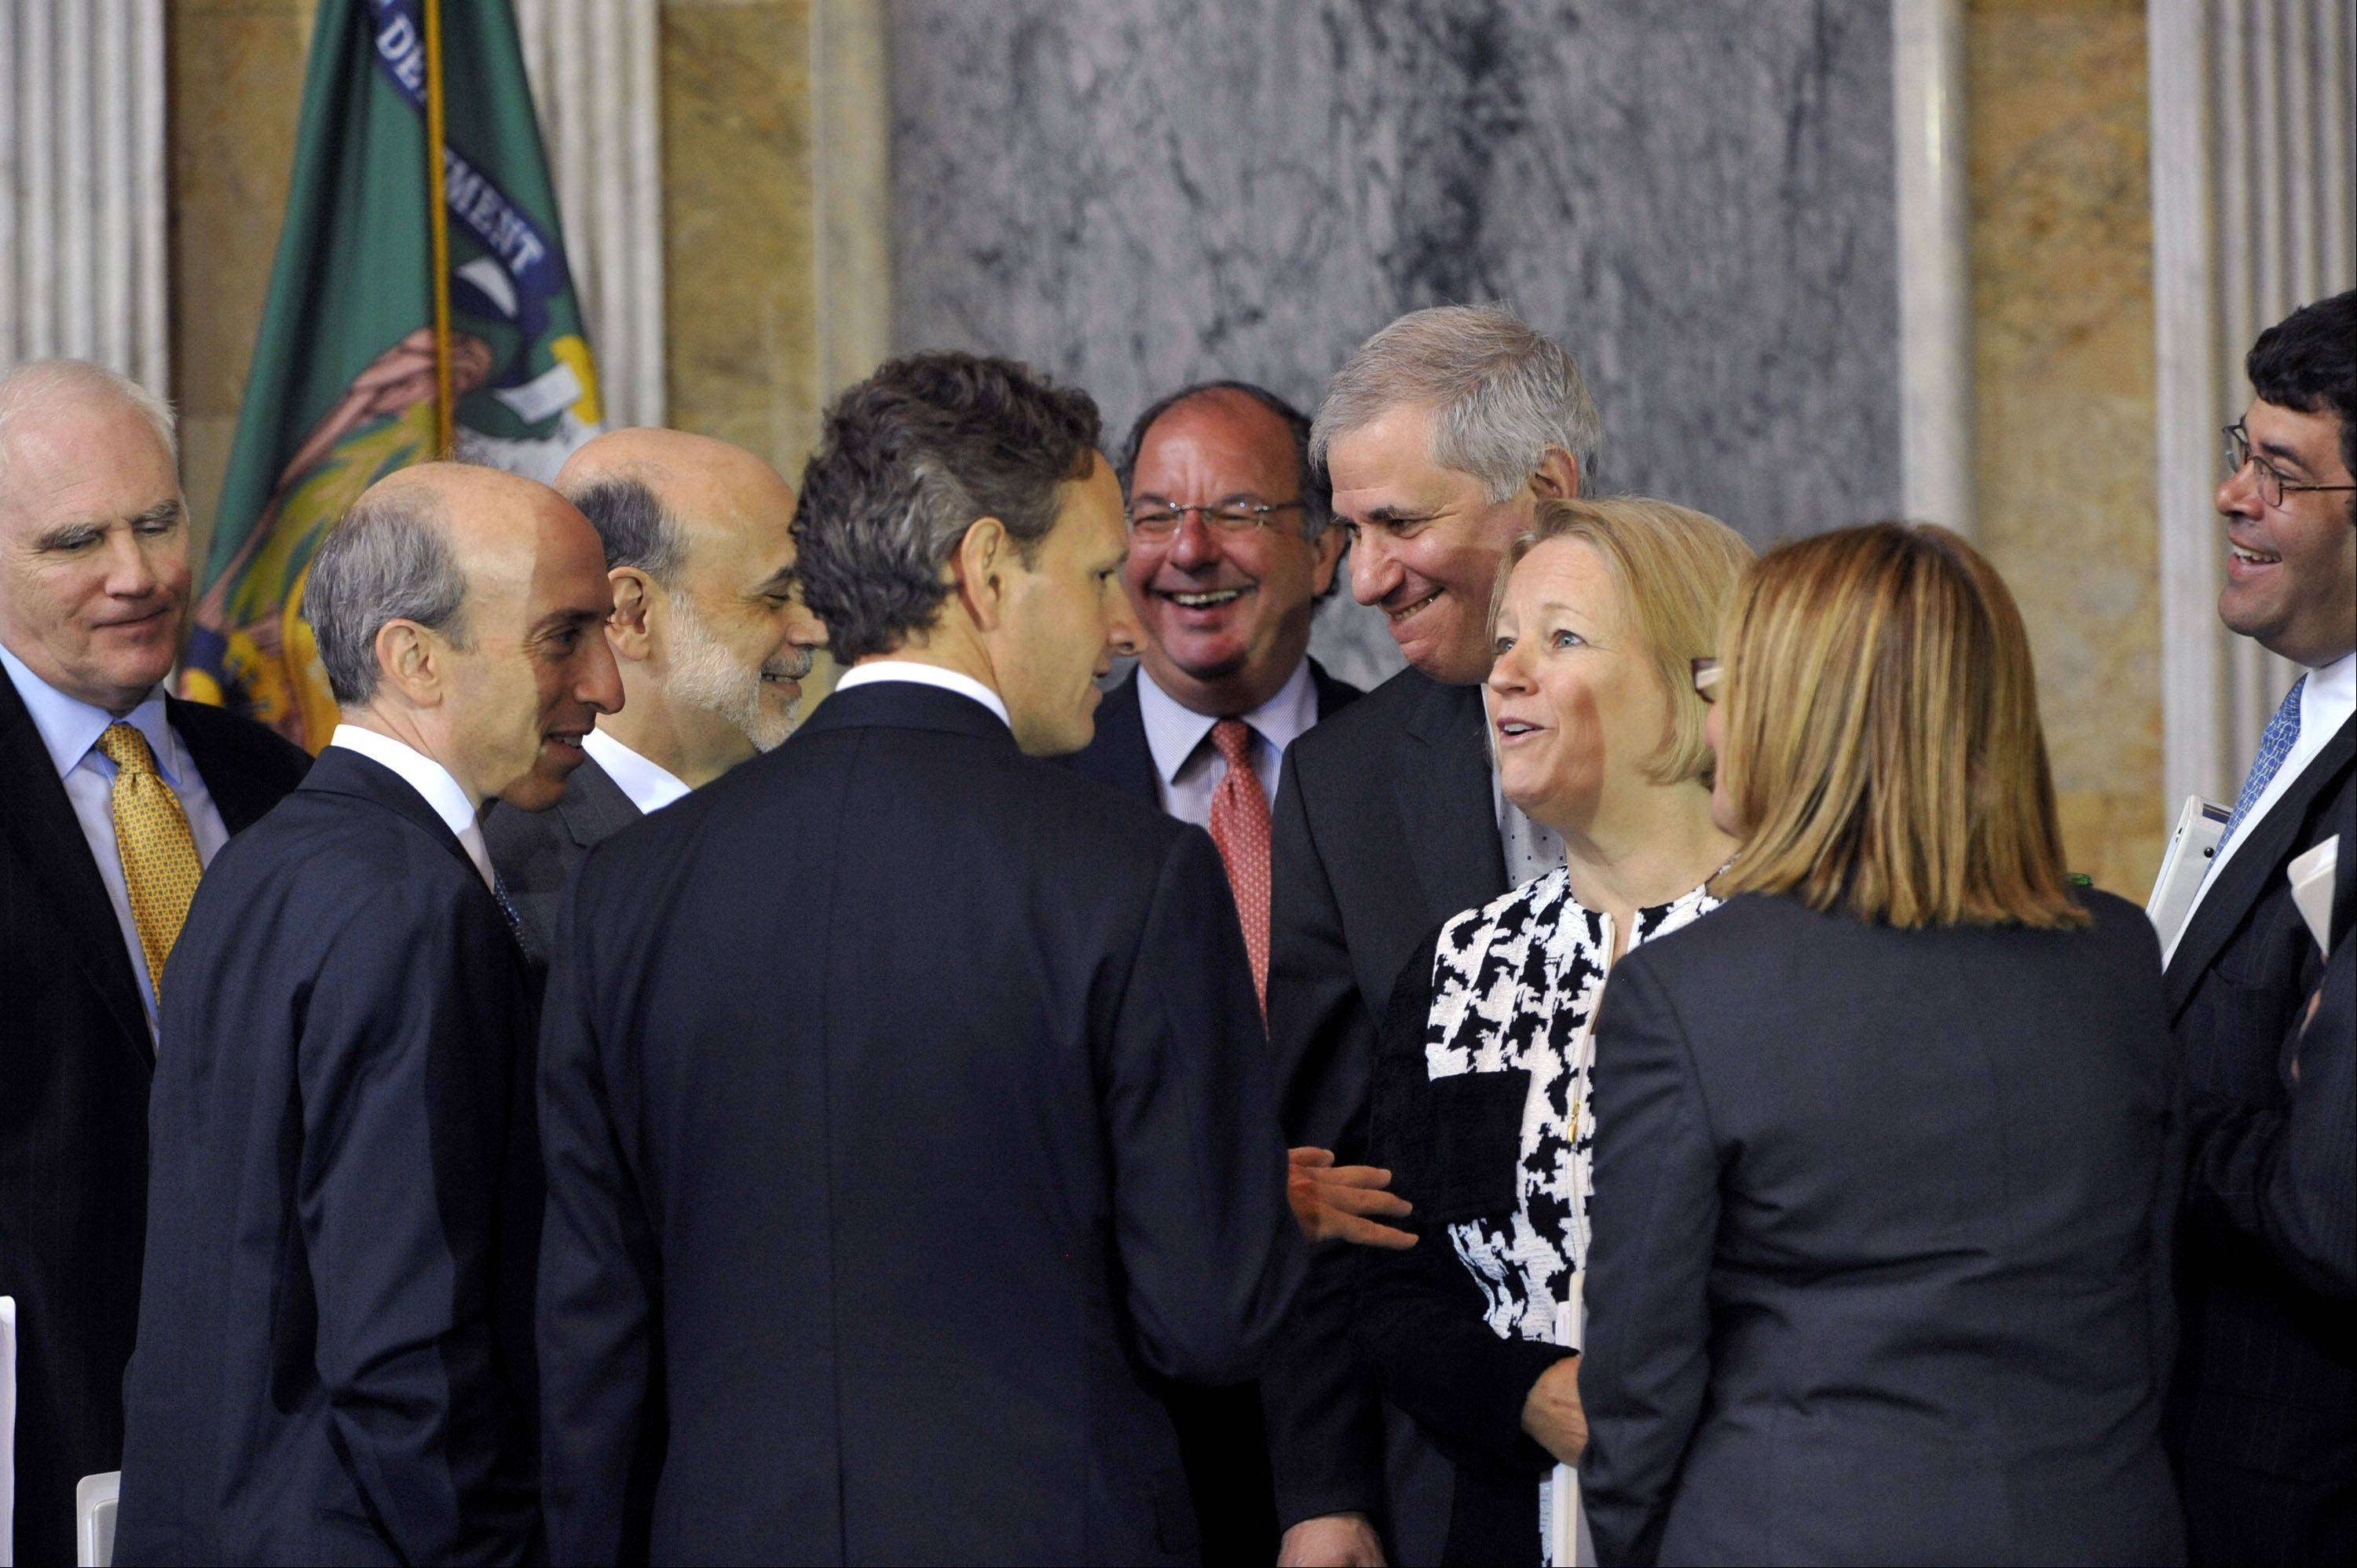 Members of the Financial Stability Oversight Commission talk after meeting in Washington on Monday. That's Treasury Secretary Timothy Geithner, center with his back turned, and Federal Reserve Chairman Ben Bernanke, to his left.